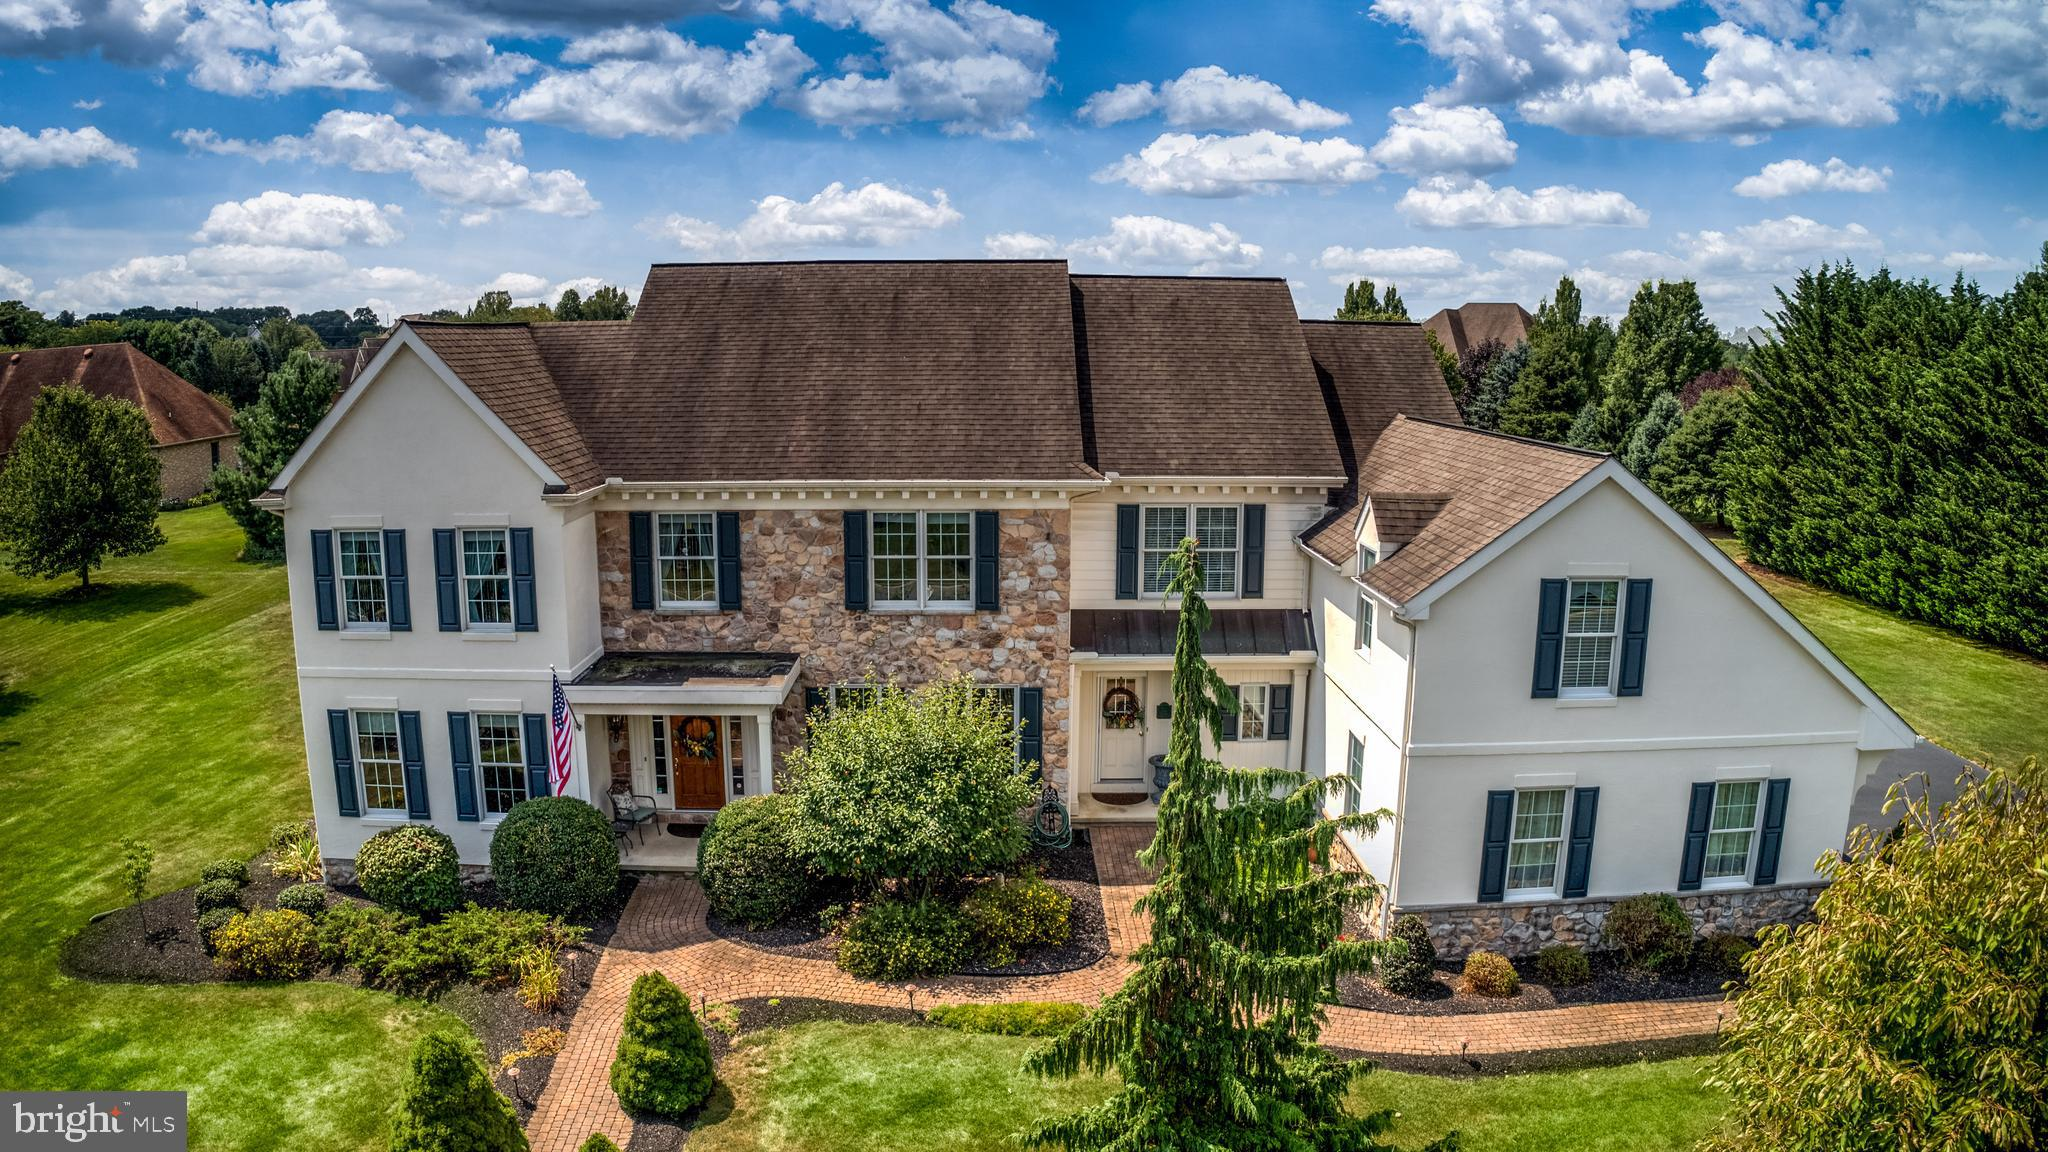 6277 WITHERS COURT, HARRISBURG, PA 17111